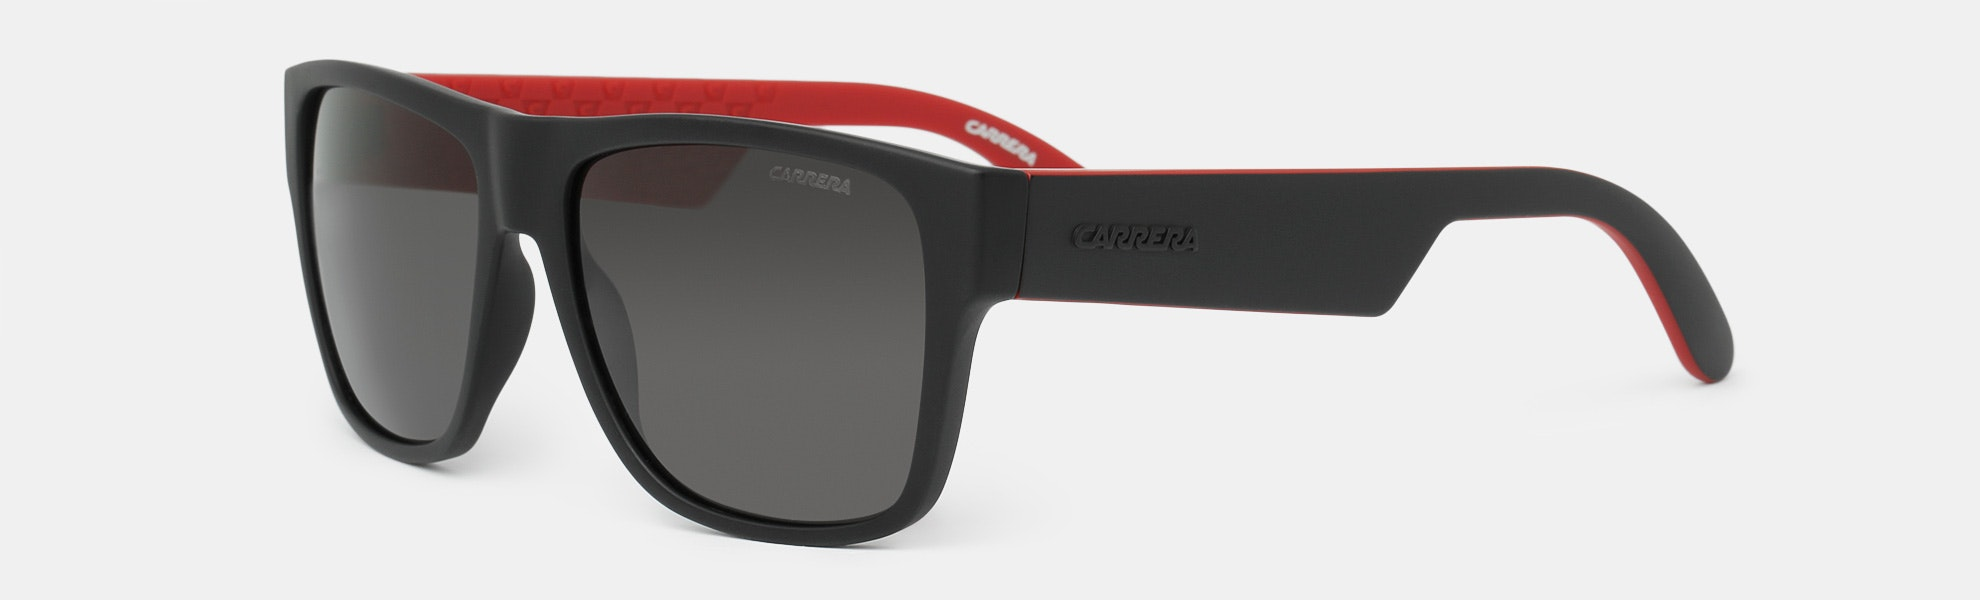 Carrera 5002L Rectangular Sunglasses